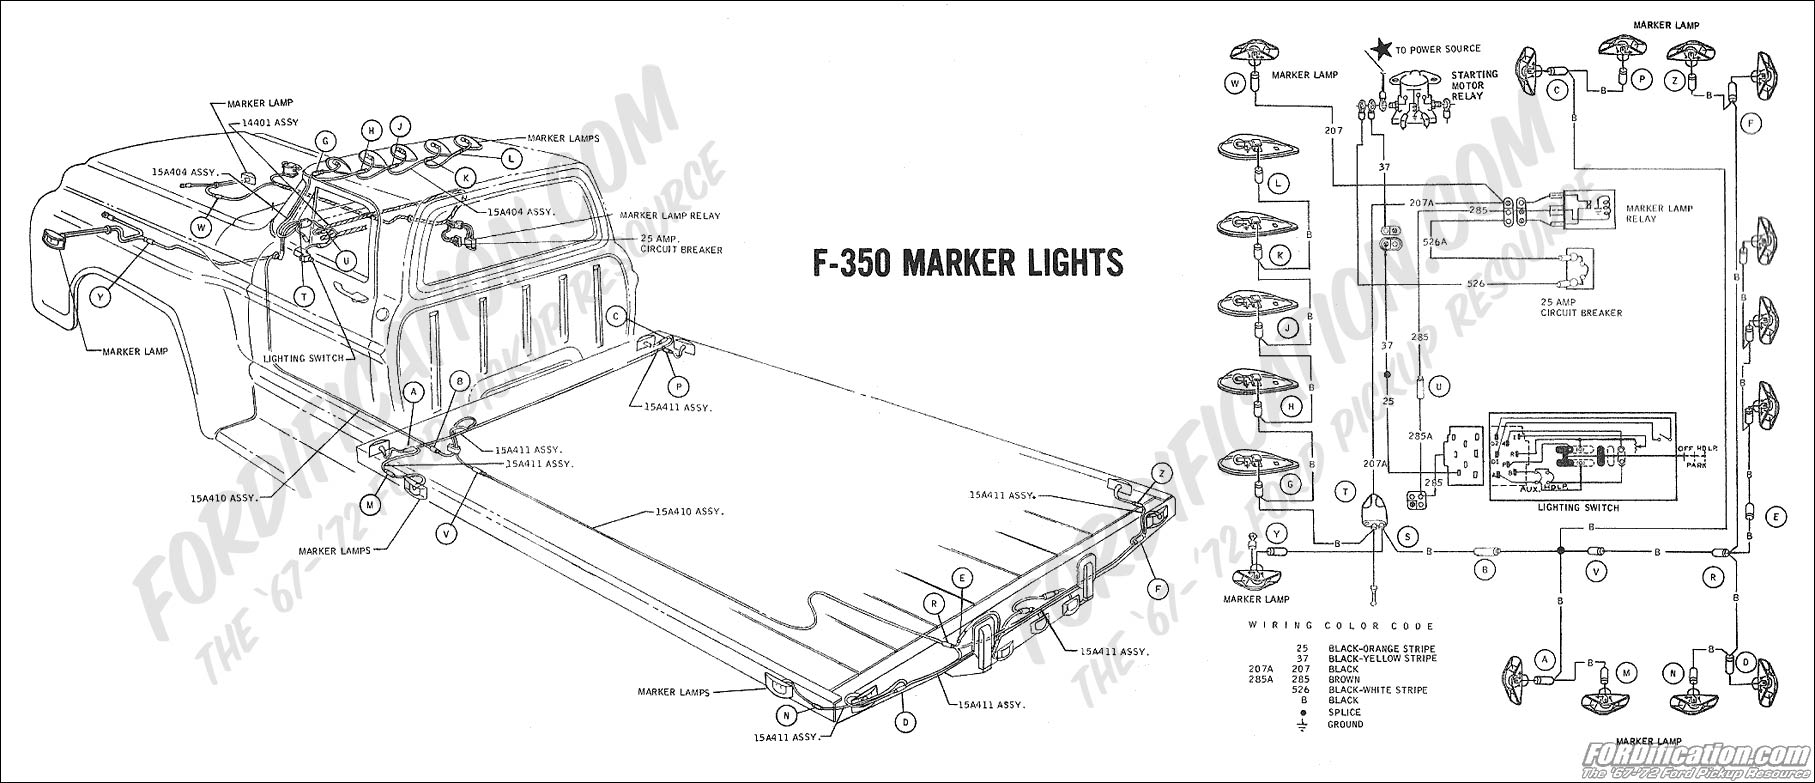 1973 f250 wiring diagram  1973  get free image about wiring diagram